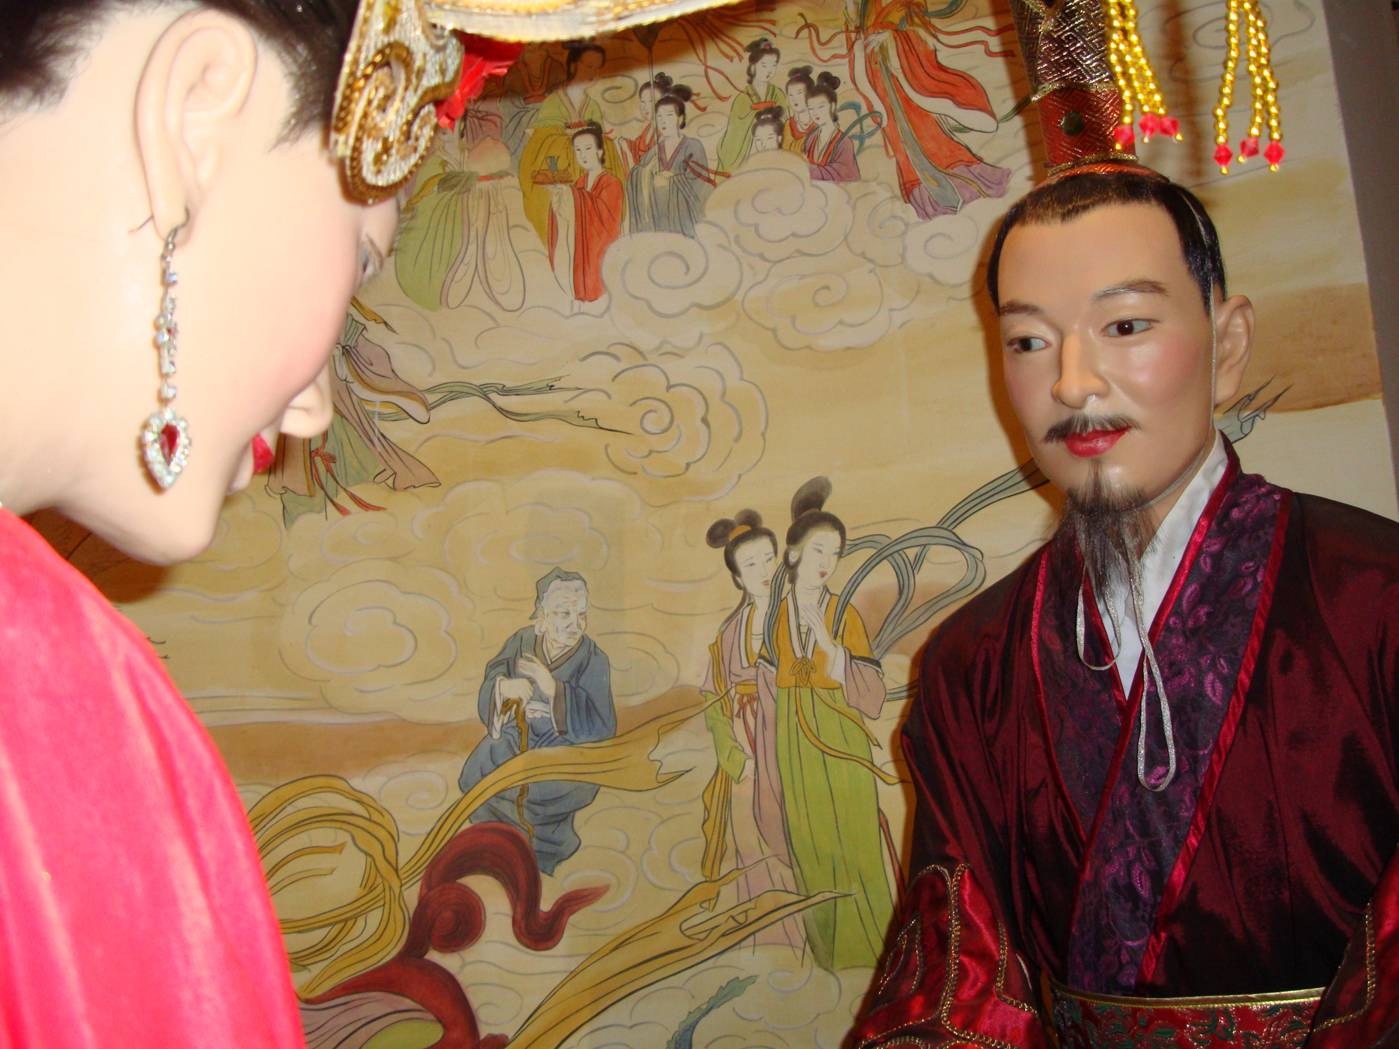 Picture:  A wax figure of a bride groom in the Tao Bo Yuan (Peach Museum), Yang Shan, Wuxi, China